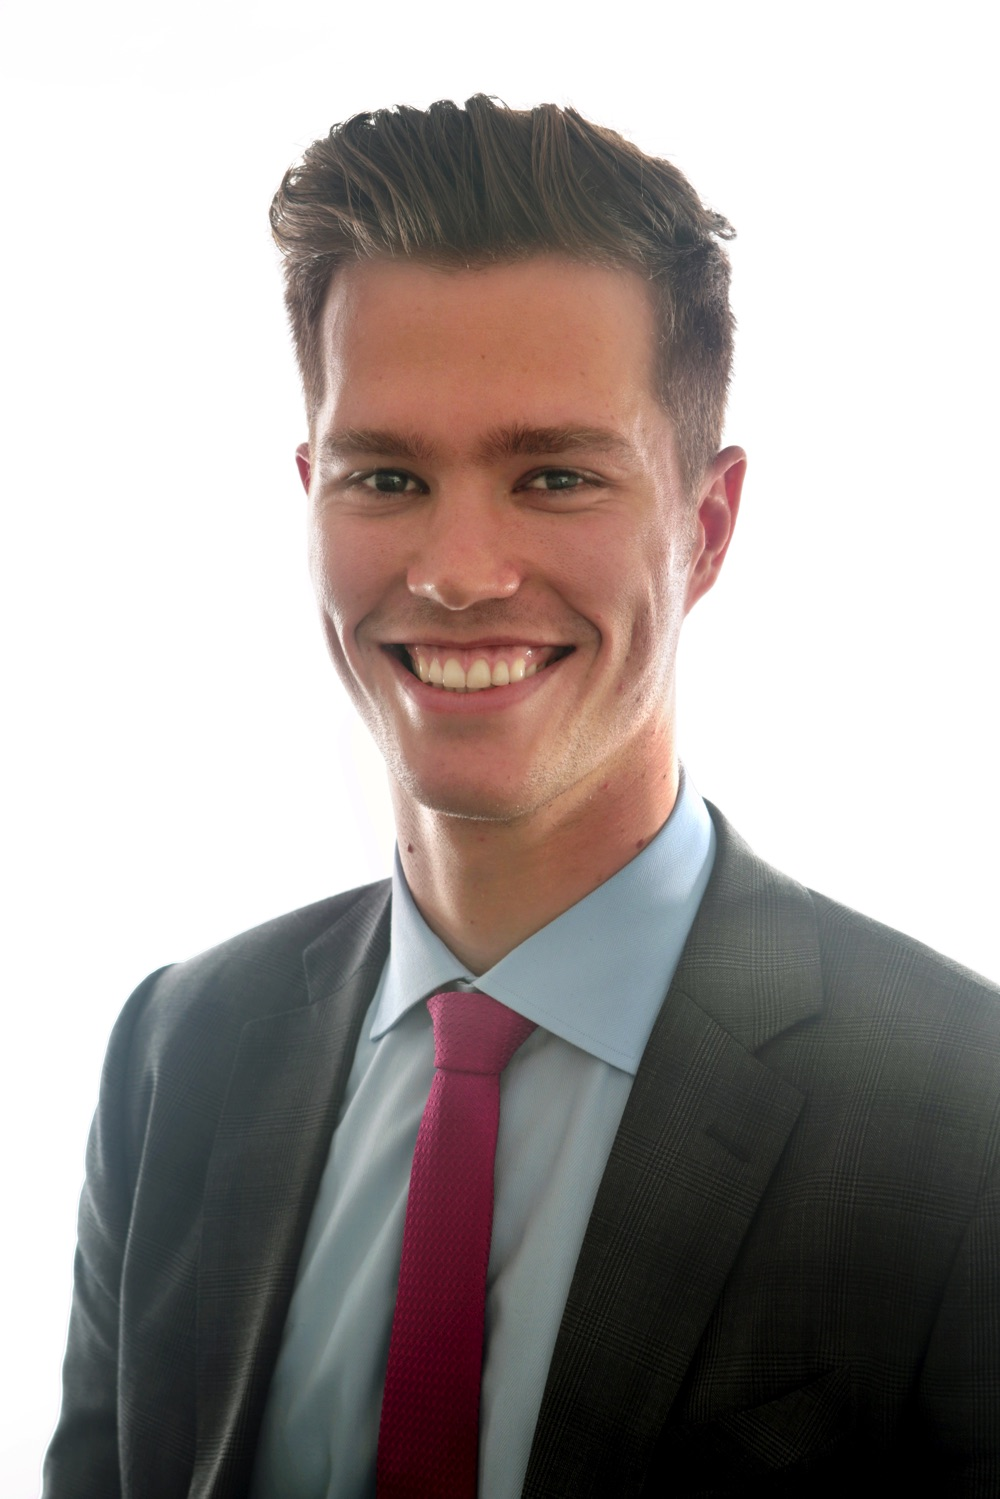 Adam Butterfield, Director -Hong Kong - Adam joined Arion House in 2015 and is now a consultant focussing on the placement of compliance and financial crime prevention professionals in Private Equity, Asset Management, Consulting and Corporate entities in Asia Pacific. He joined from the University of Exeter where he graduated with a Bachelor of Science in Exercise & Sports Sciences and Business Management.E: abutterfield@arionhouse.comD: +852 6477 2355